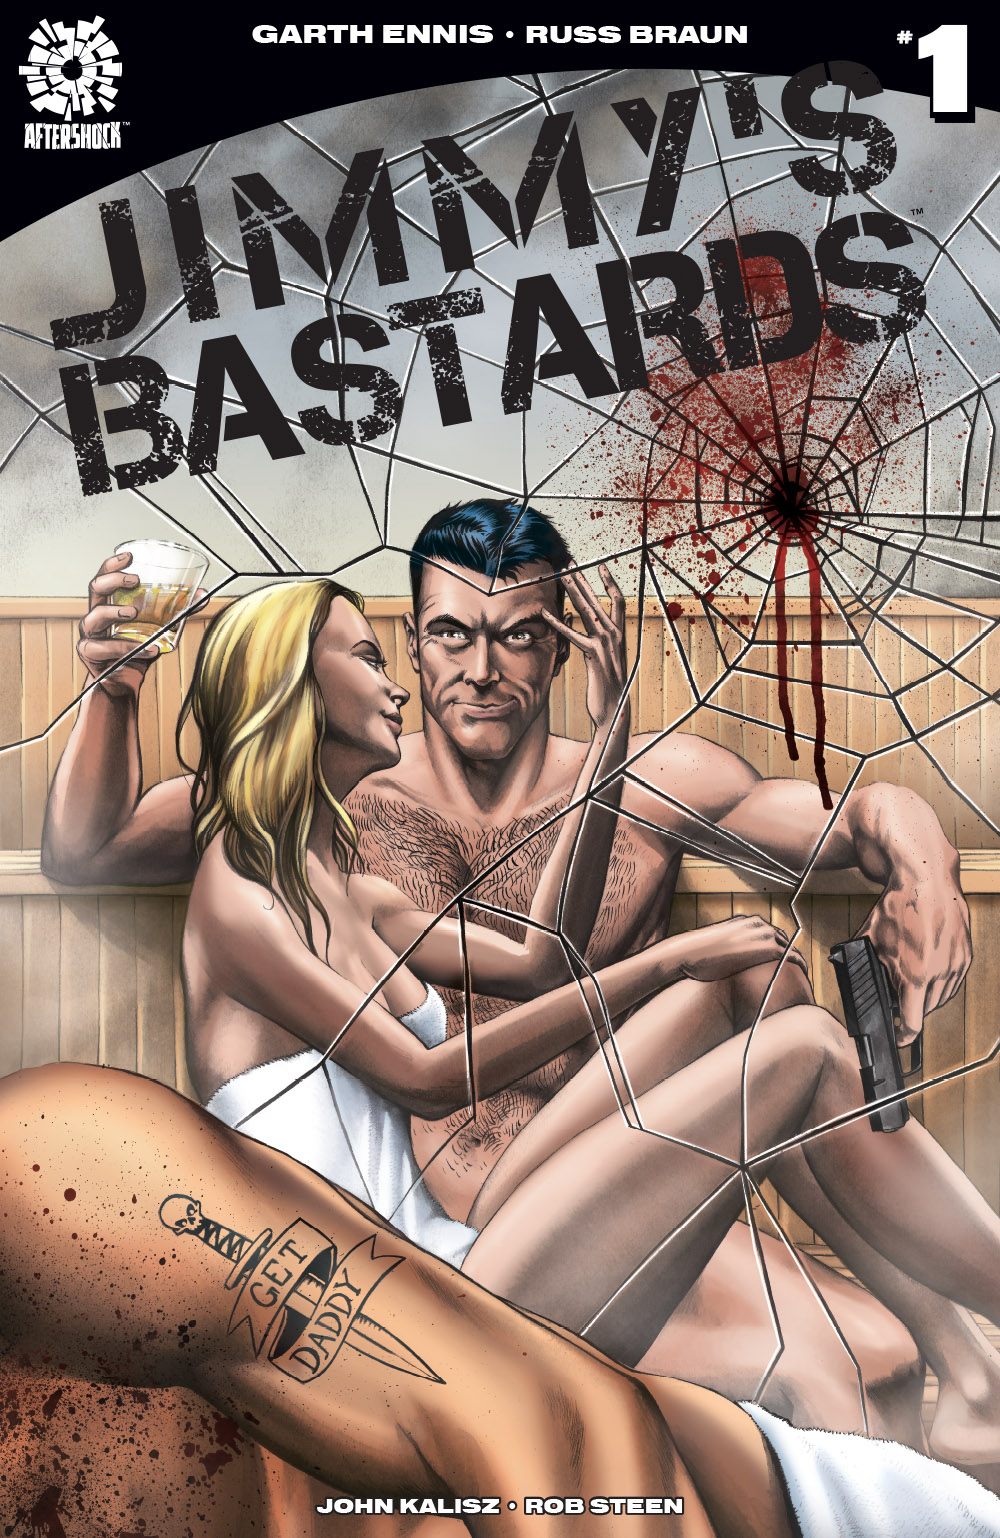 Jimmy's Bastards, Aftershock Comics variant